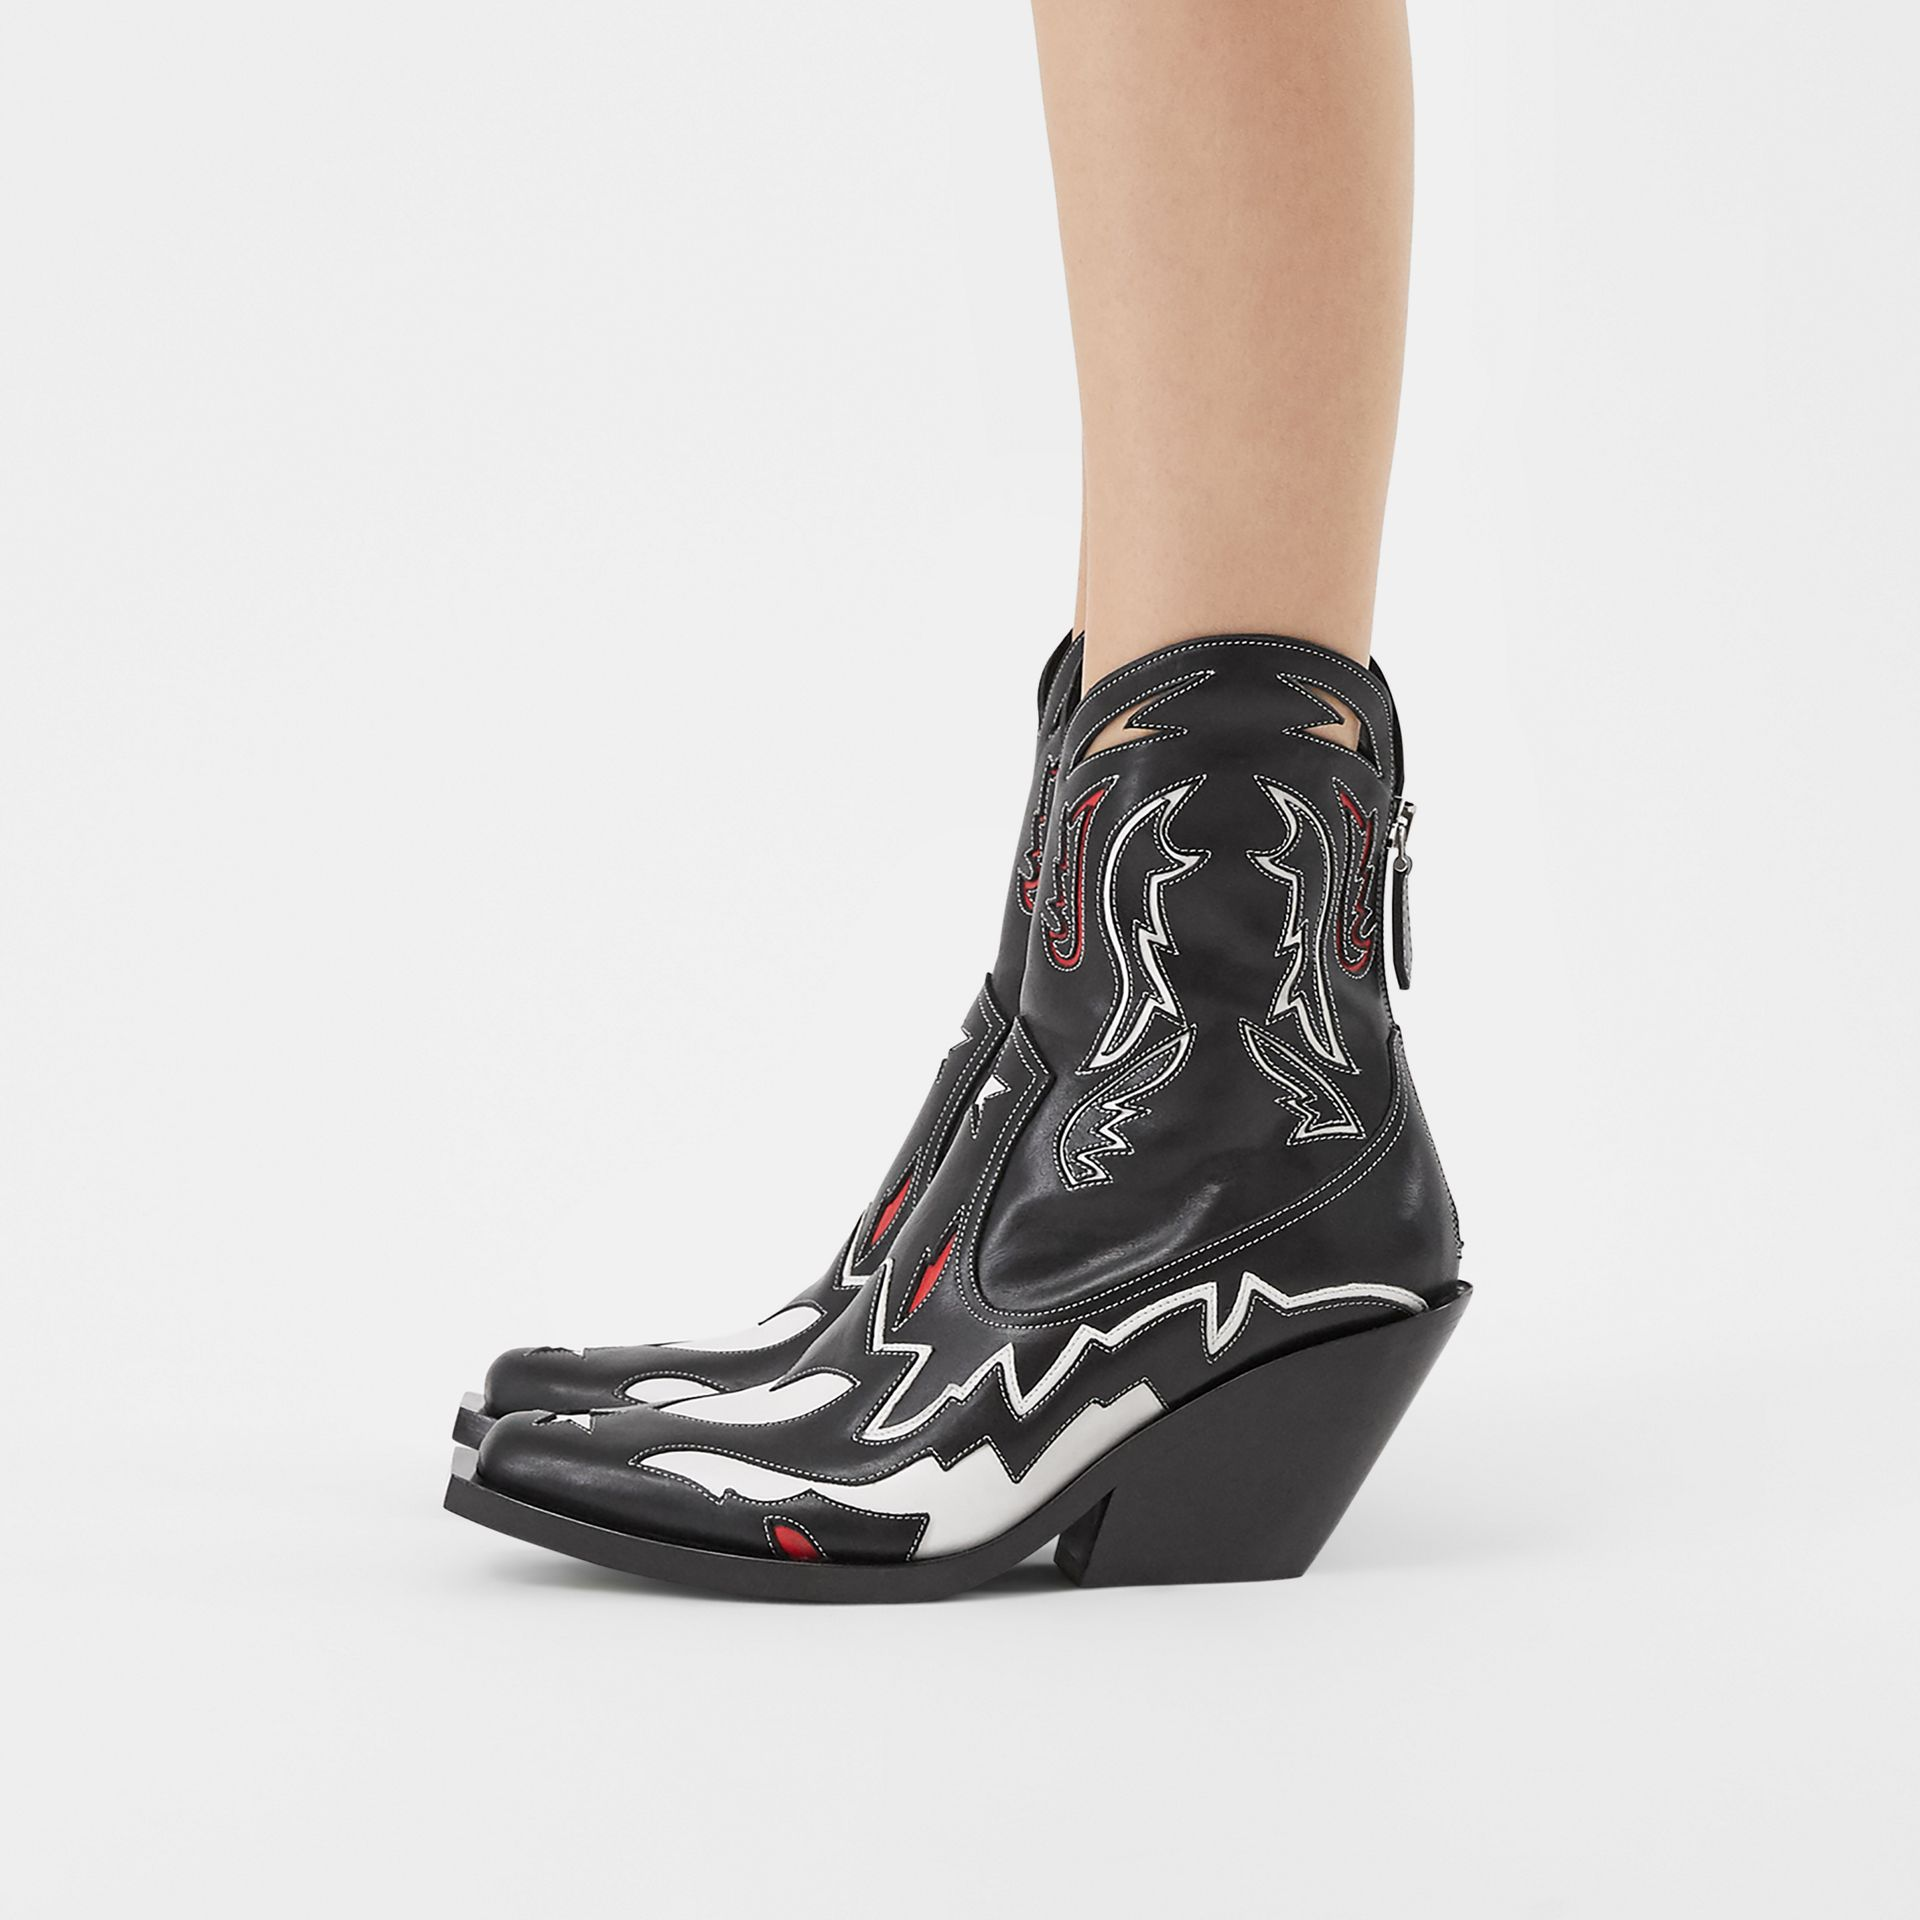 Topstitch Appliqué Leather Boots in Black/white - Women | Burberry United Kingdom - gallery image 2